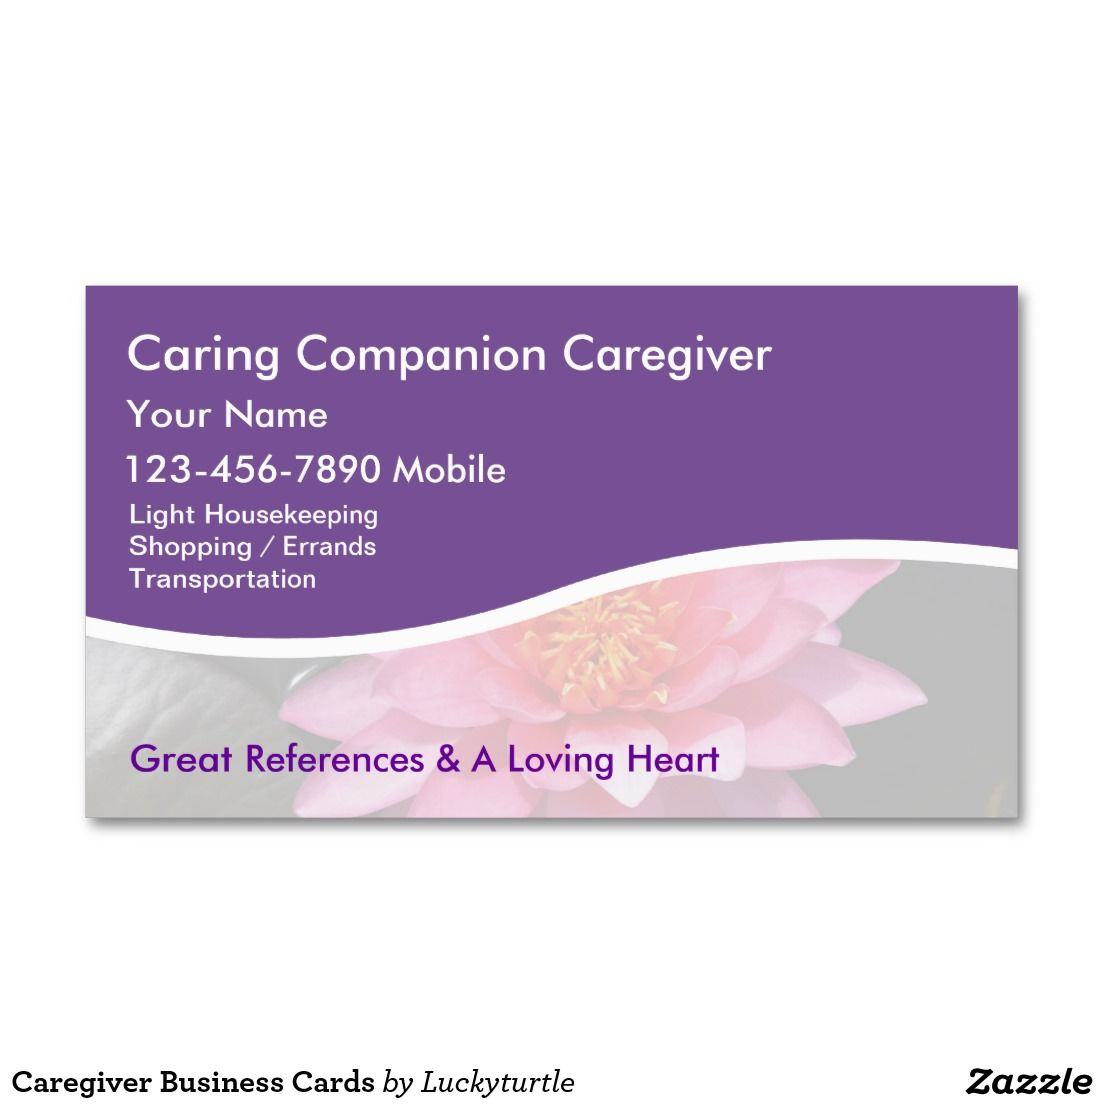 Caregiver Business Cards | Medical Themed Business Cards ...